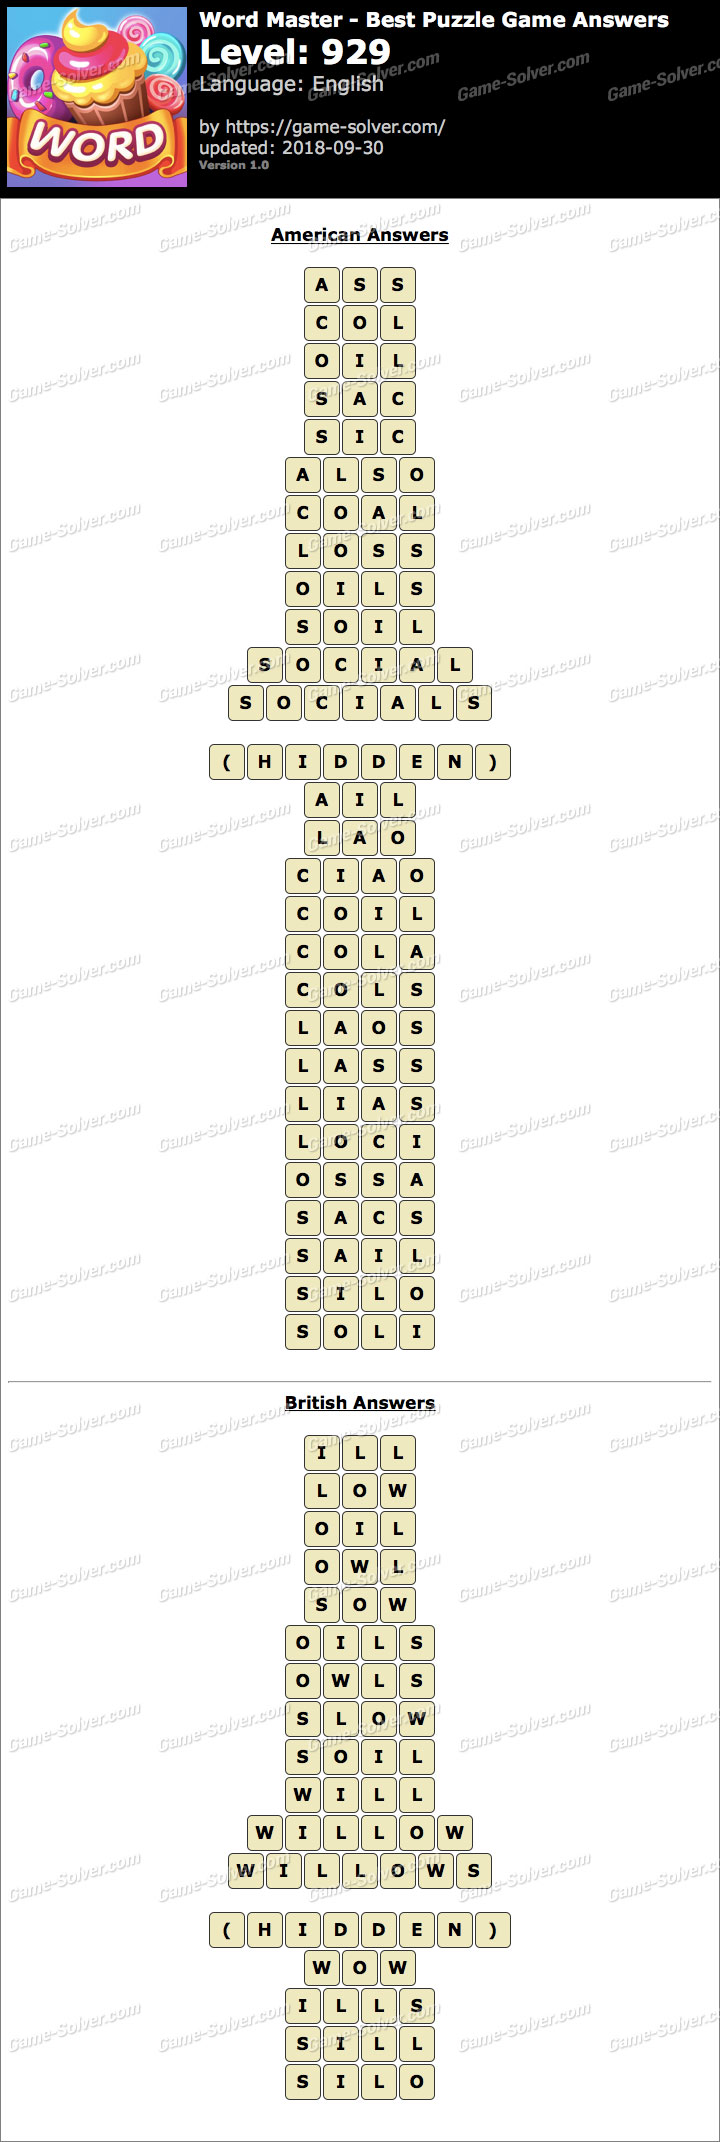 Word Master-Best Puzzle Game Level 929 Answers